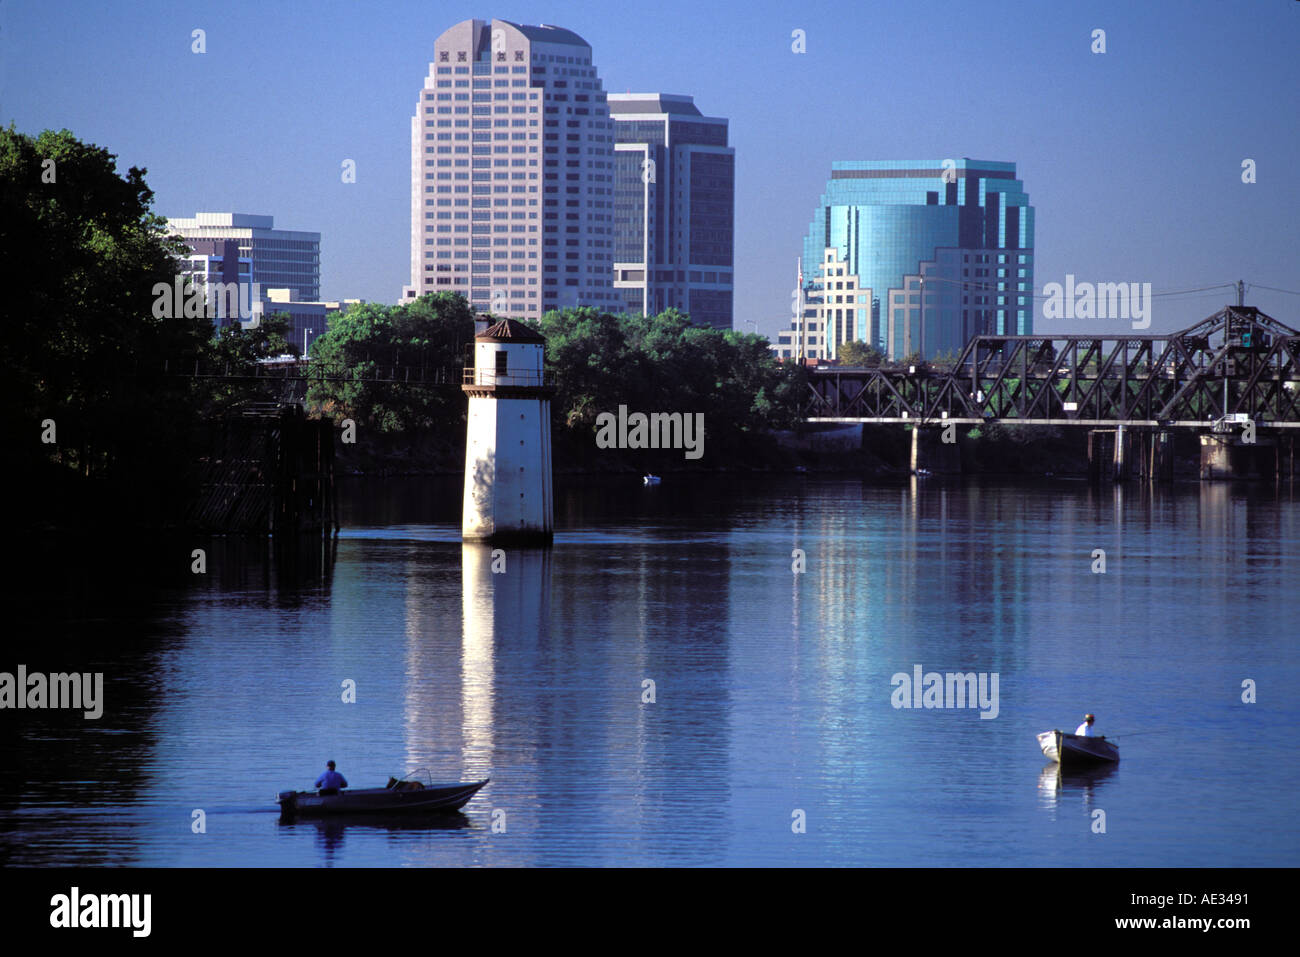 California, Sacramento, Fishing on the Sacramento River Stock Photo